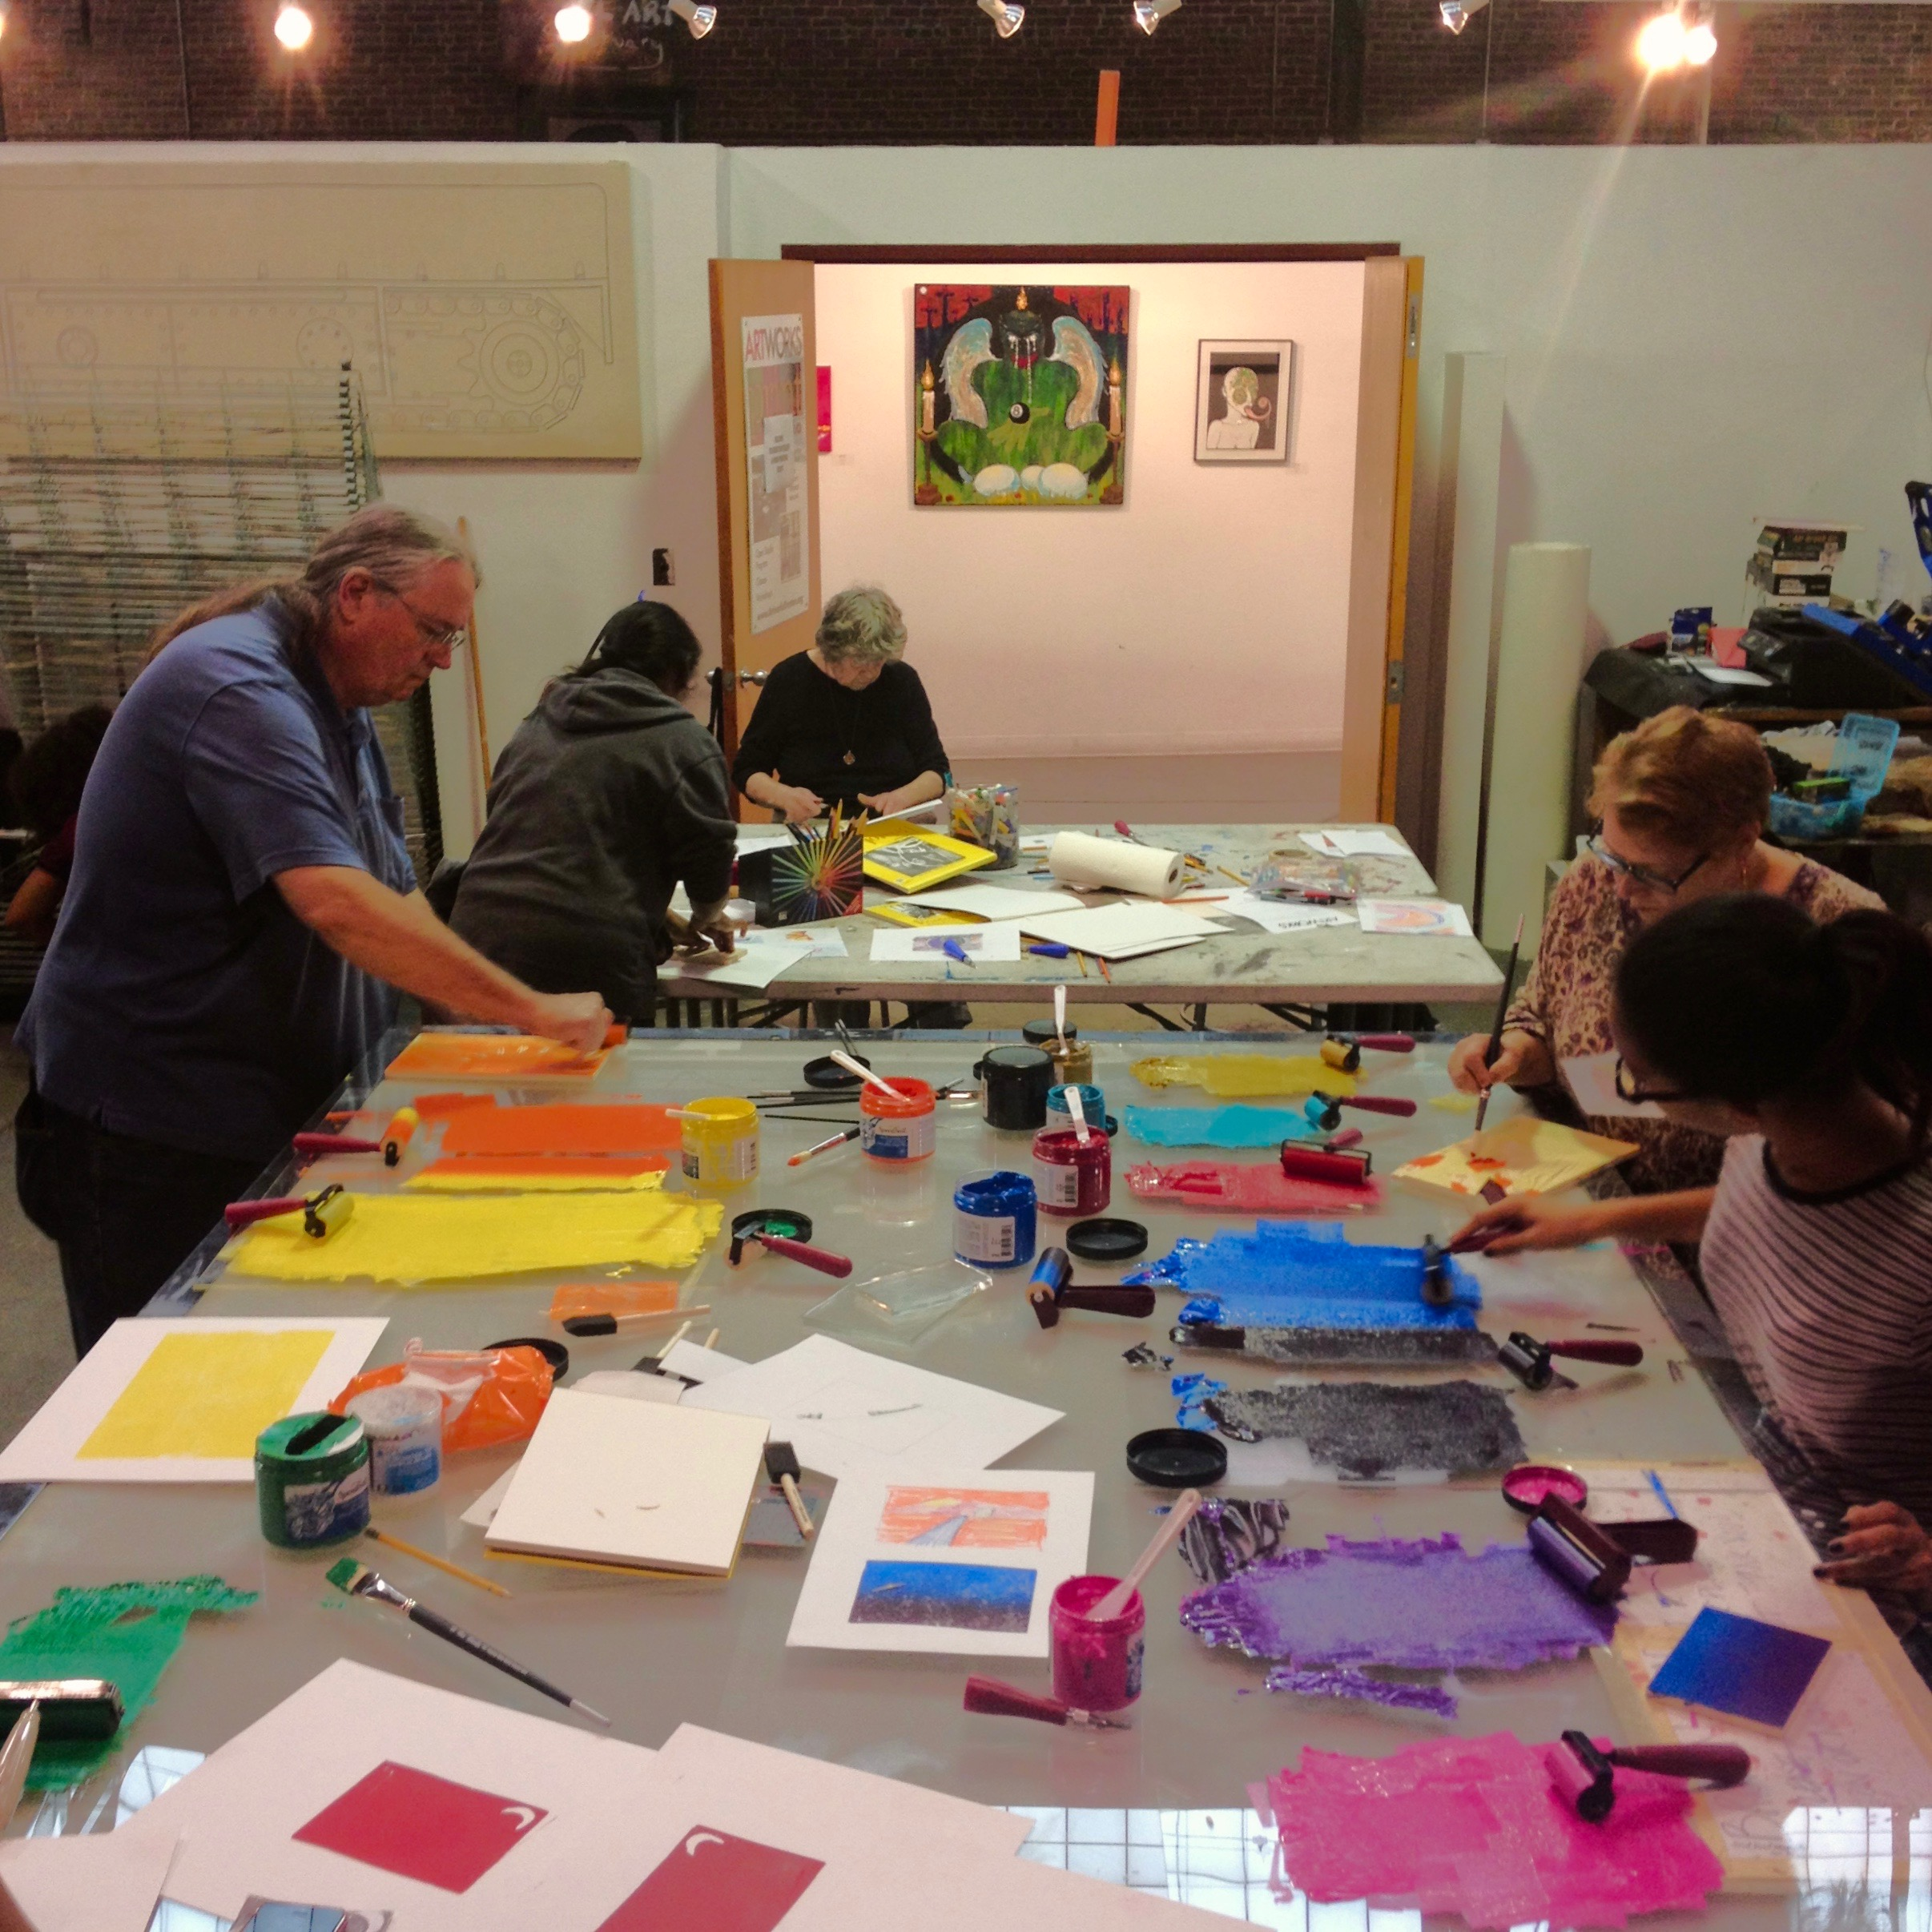 Relief Print Workshop at Artworks in Trenton, NJ.